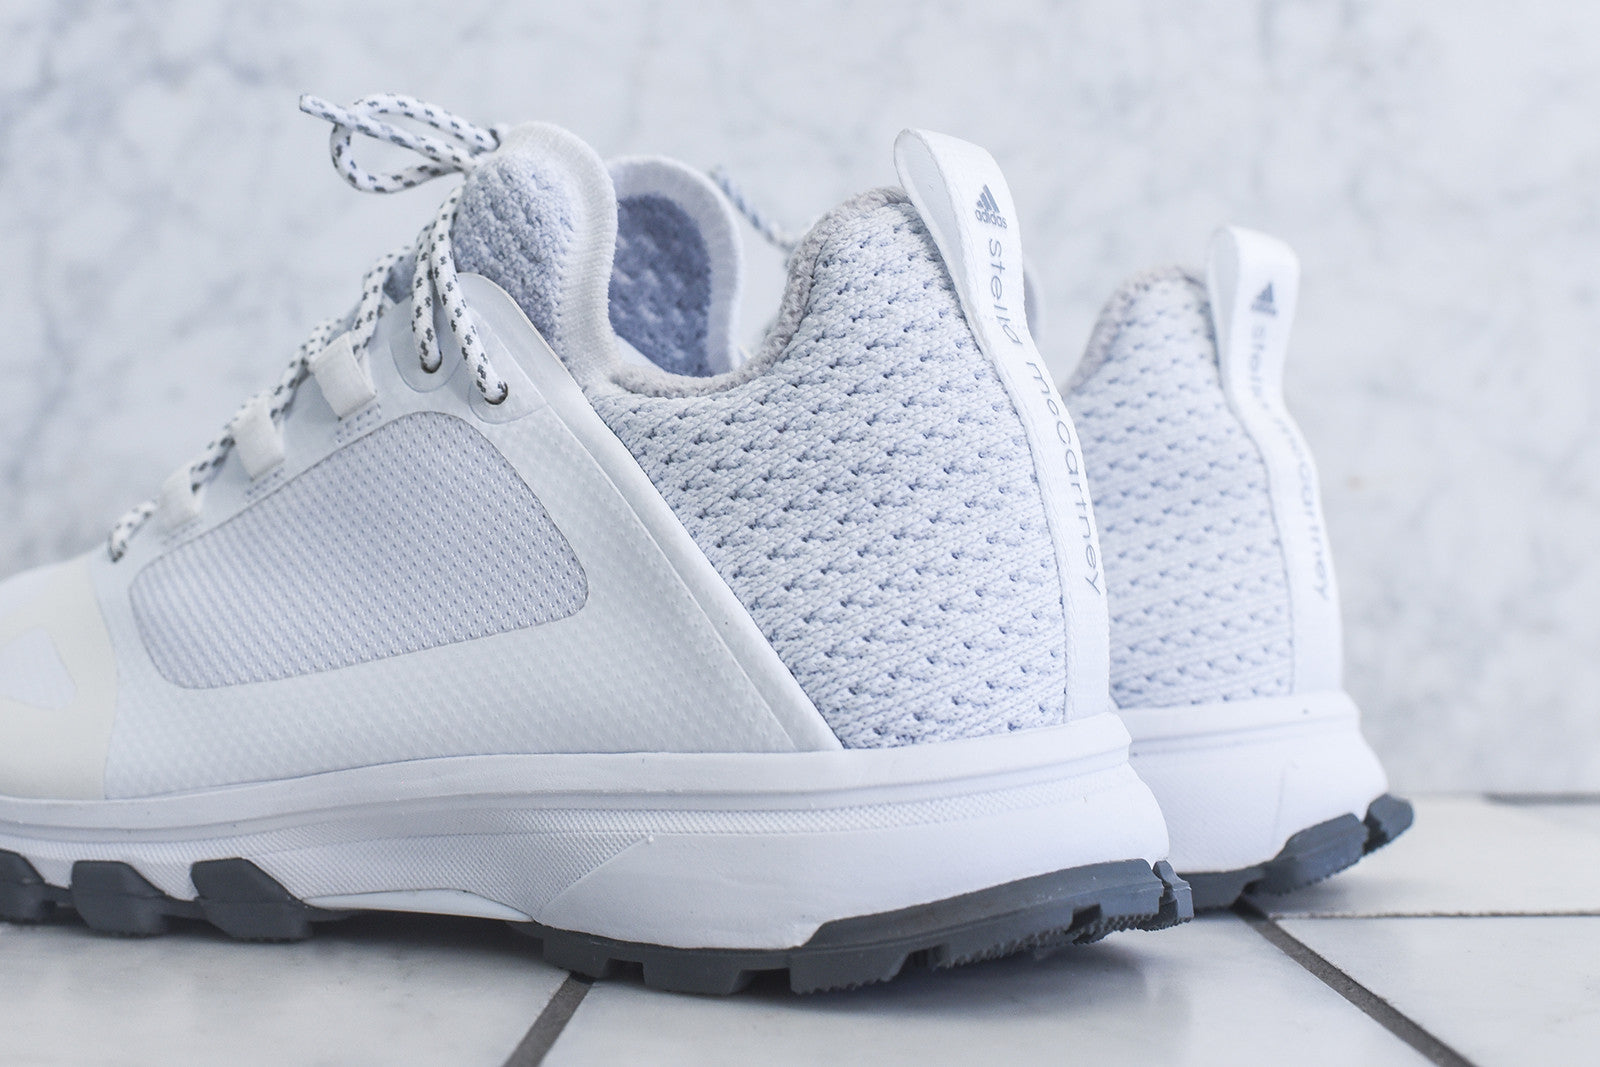 adidas by Stella McCartney WMNS Adizero XT -White / Grey